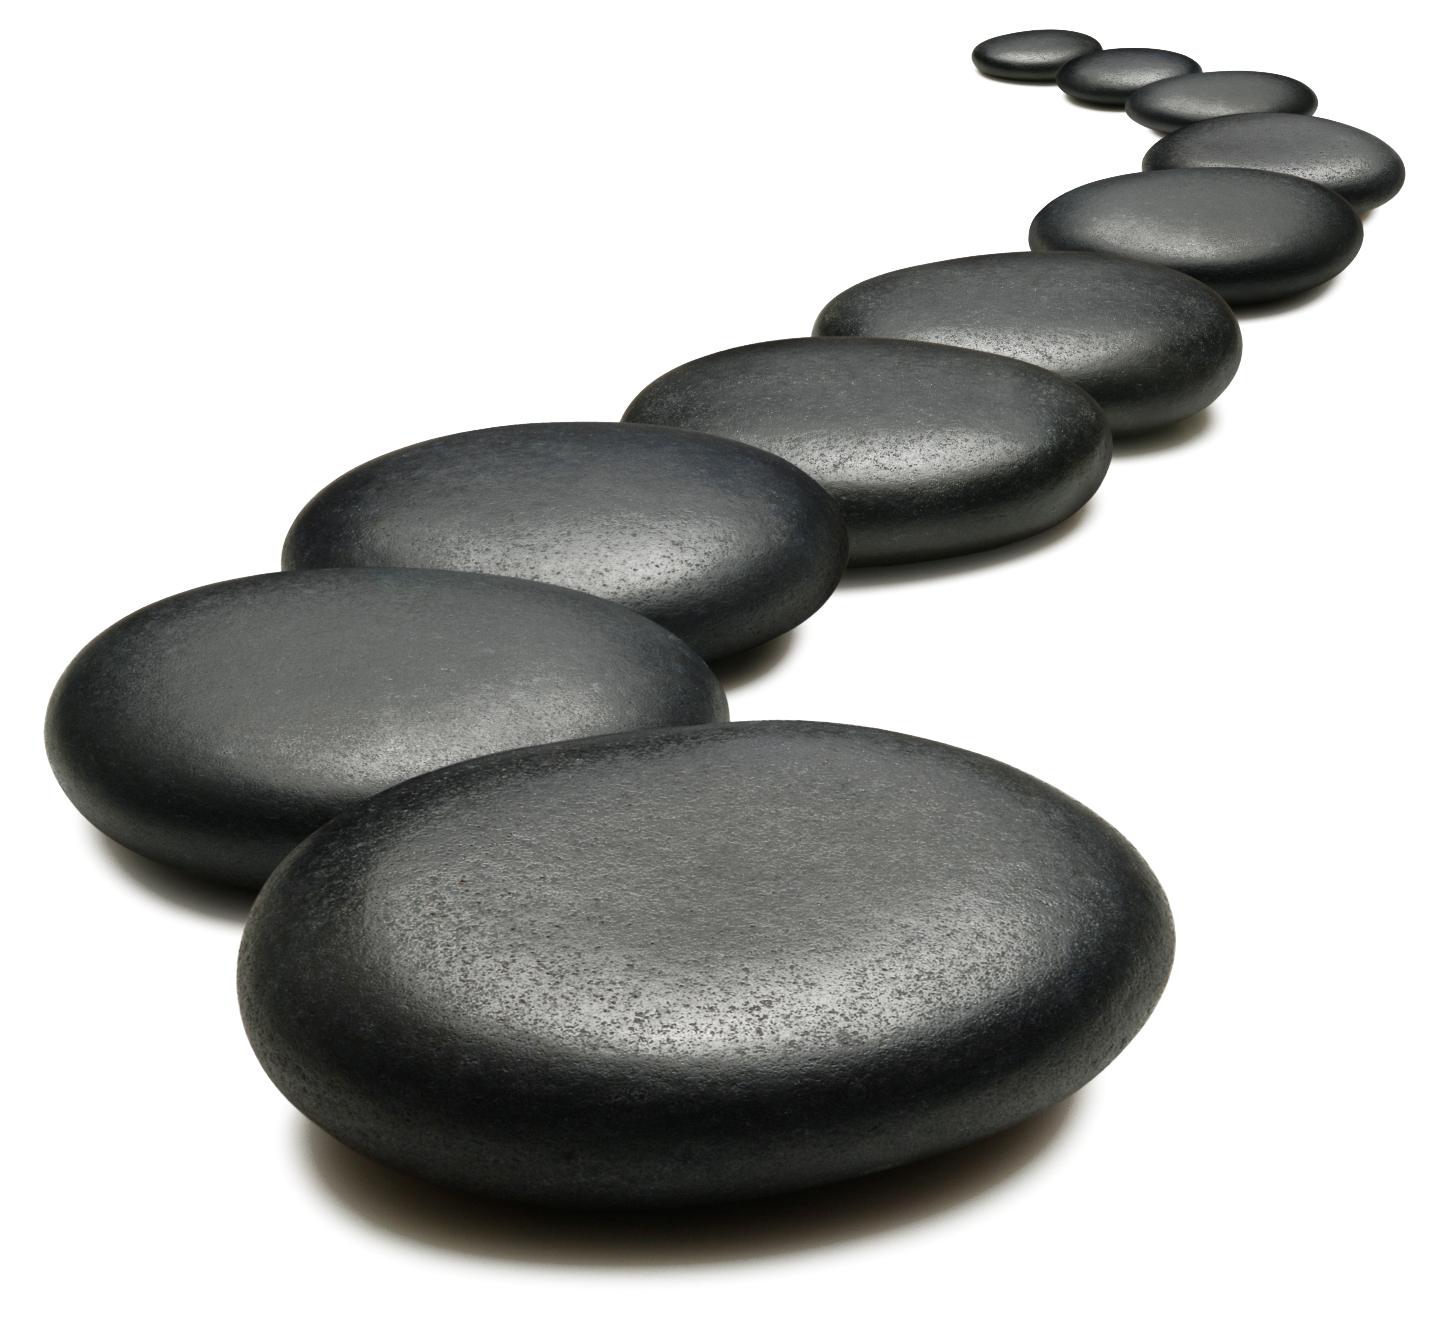 image of Massage Therapy stones